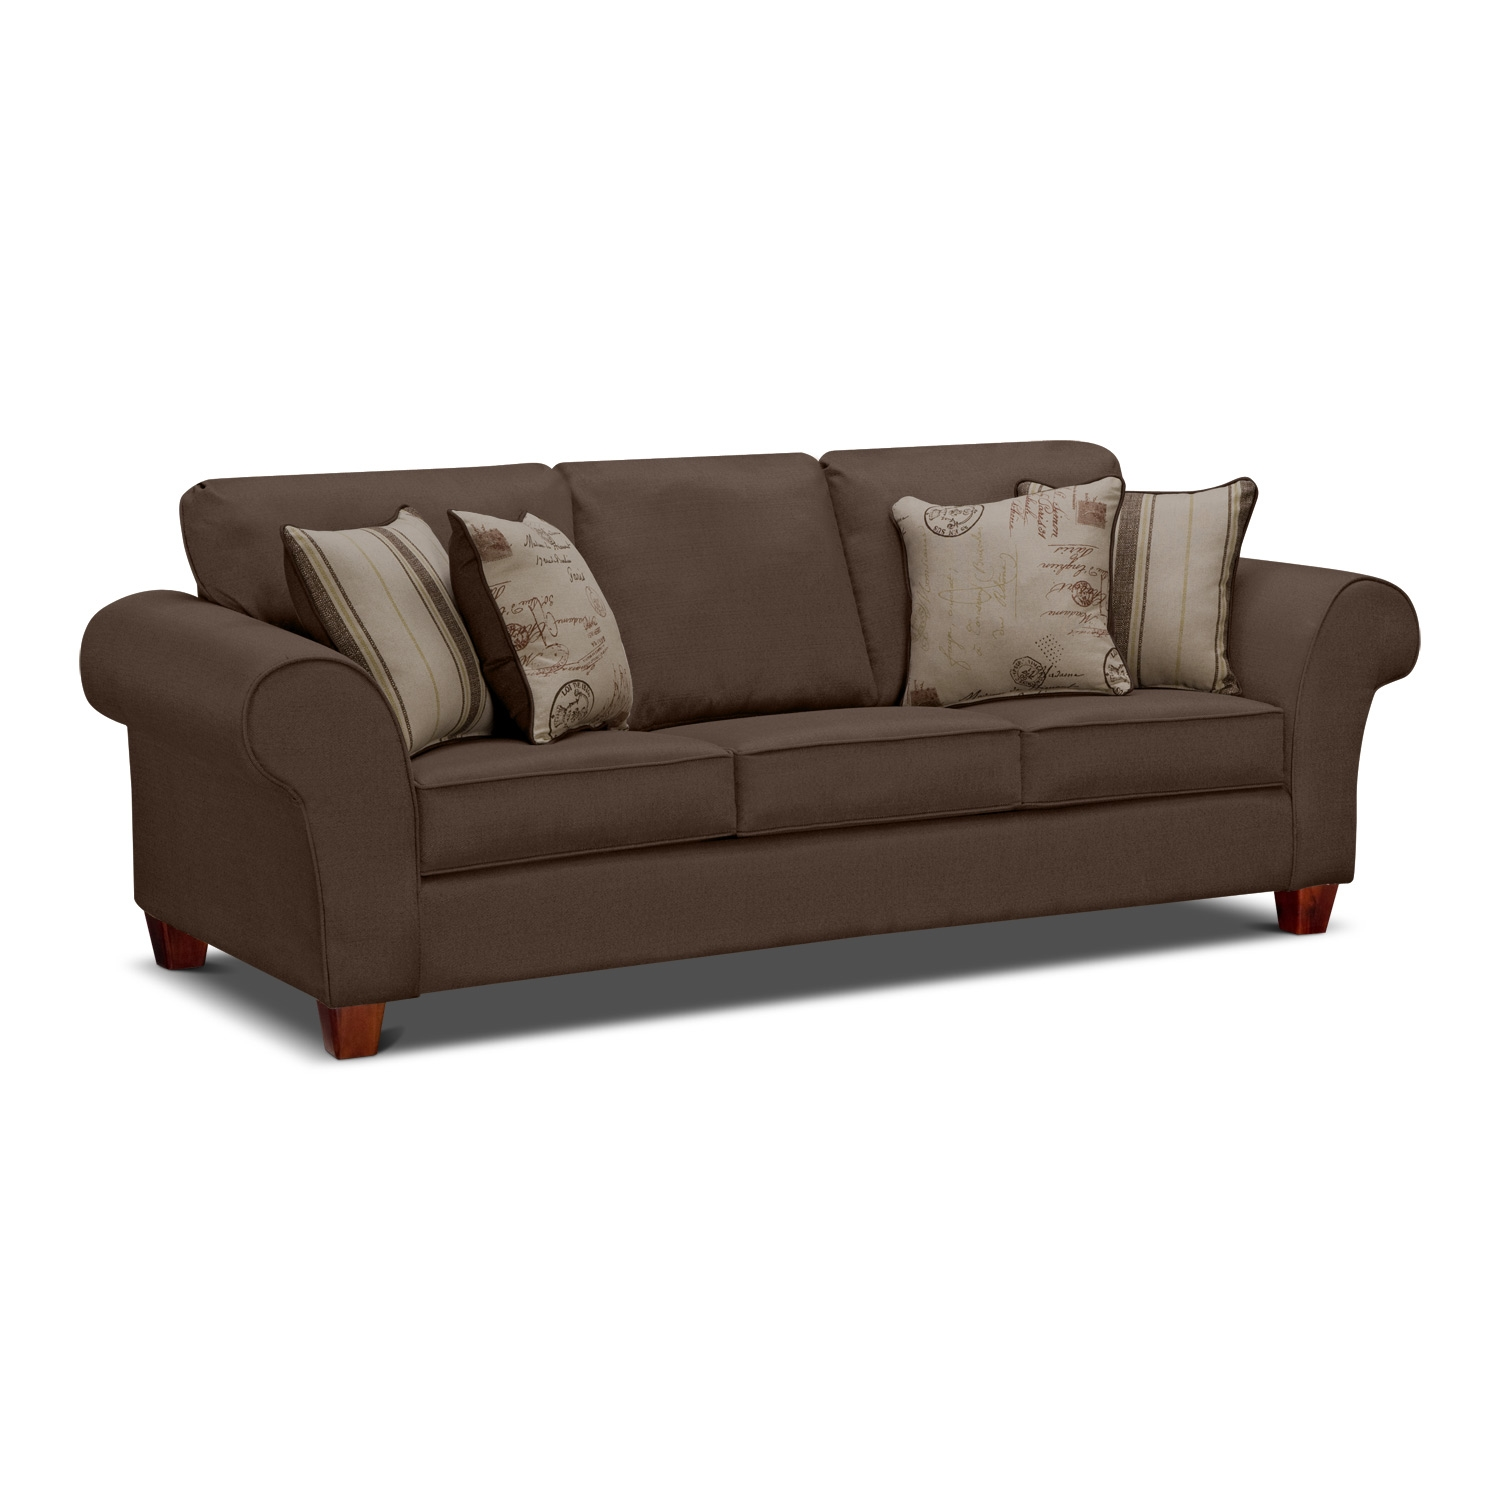 Cheap Sofas On Sale: Couch & Sofa Ideas Interior Design